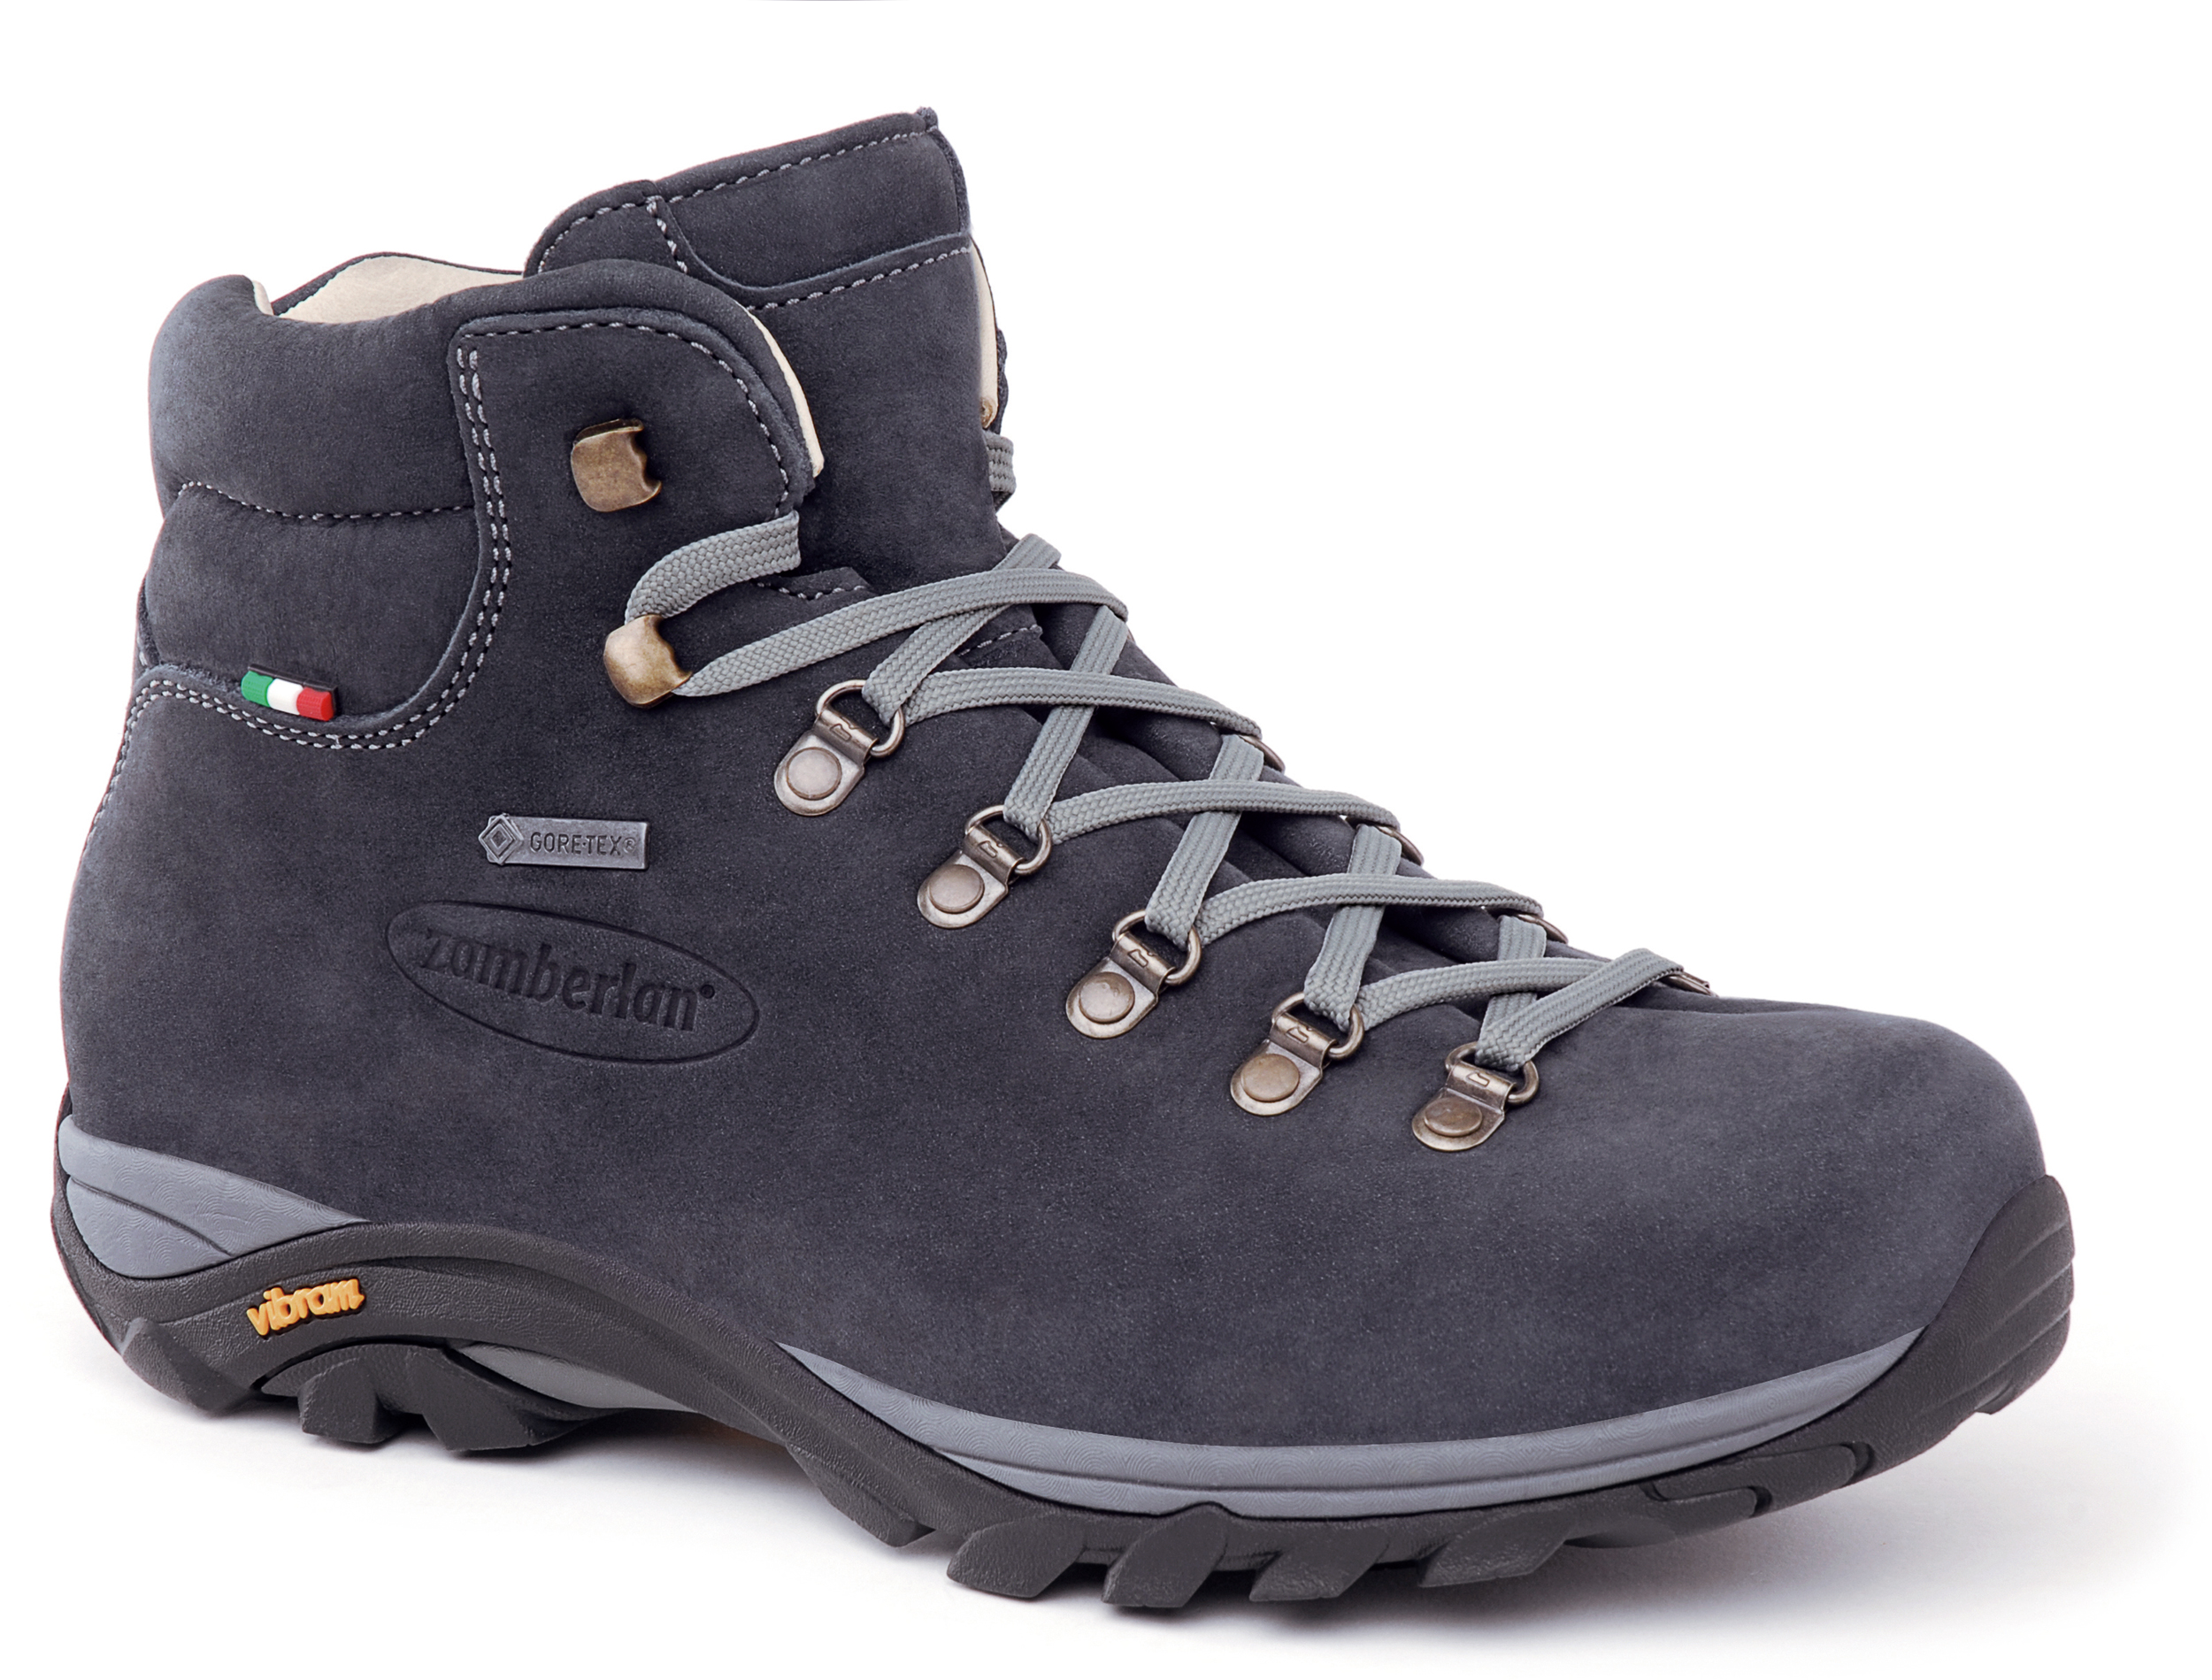 575528aa1d0 Women's Footwear | MEC